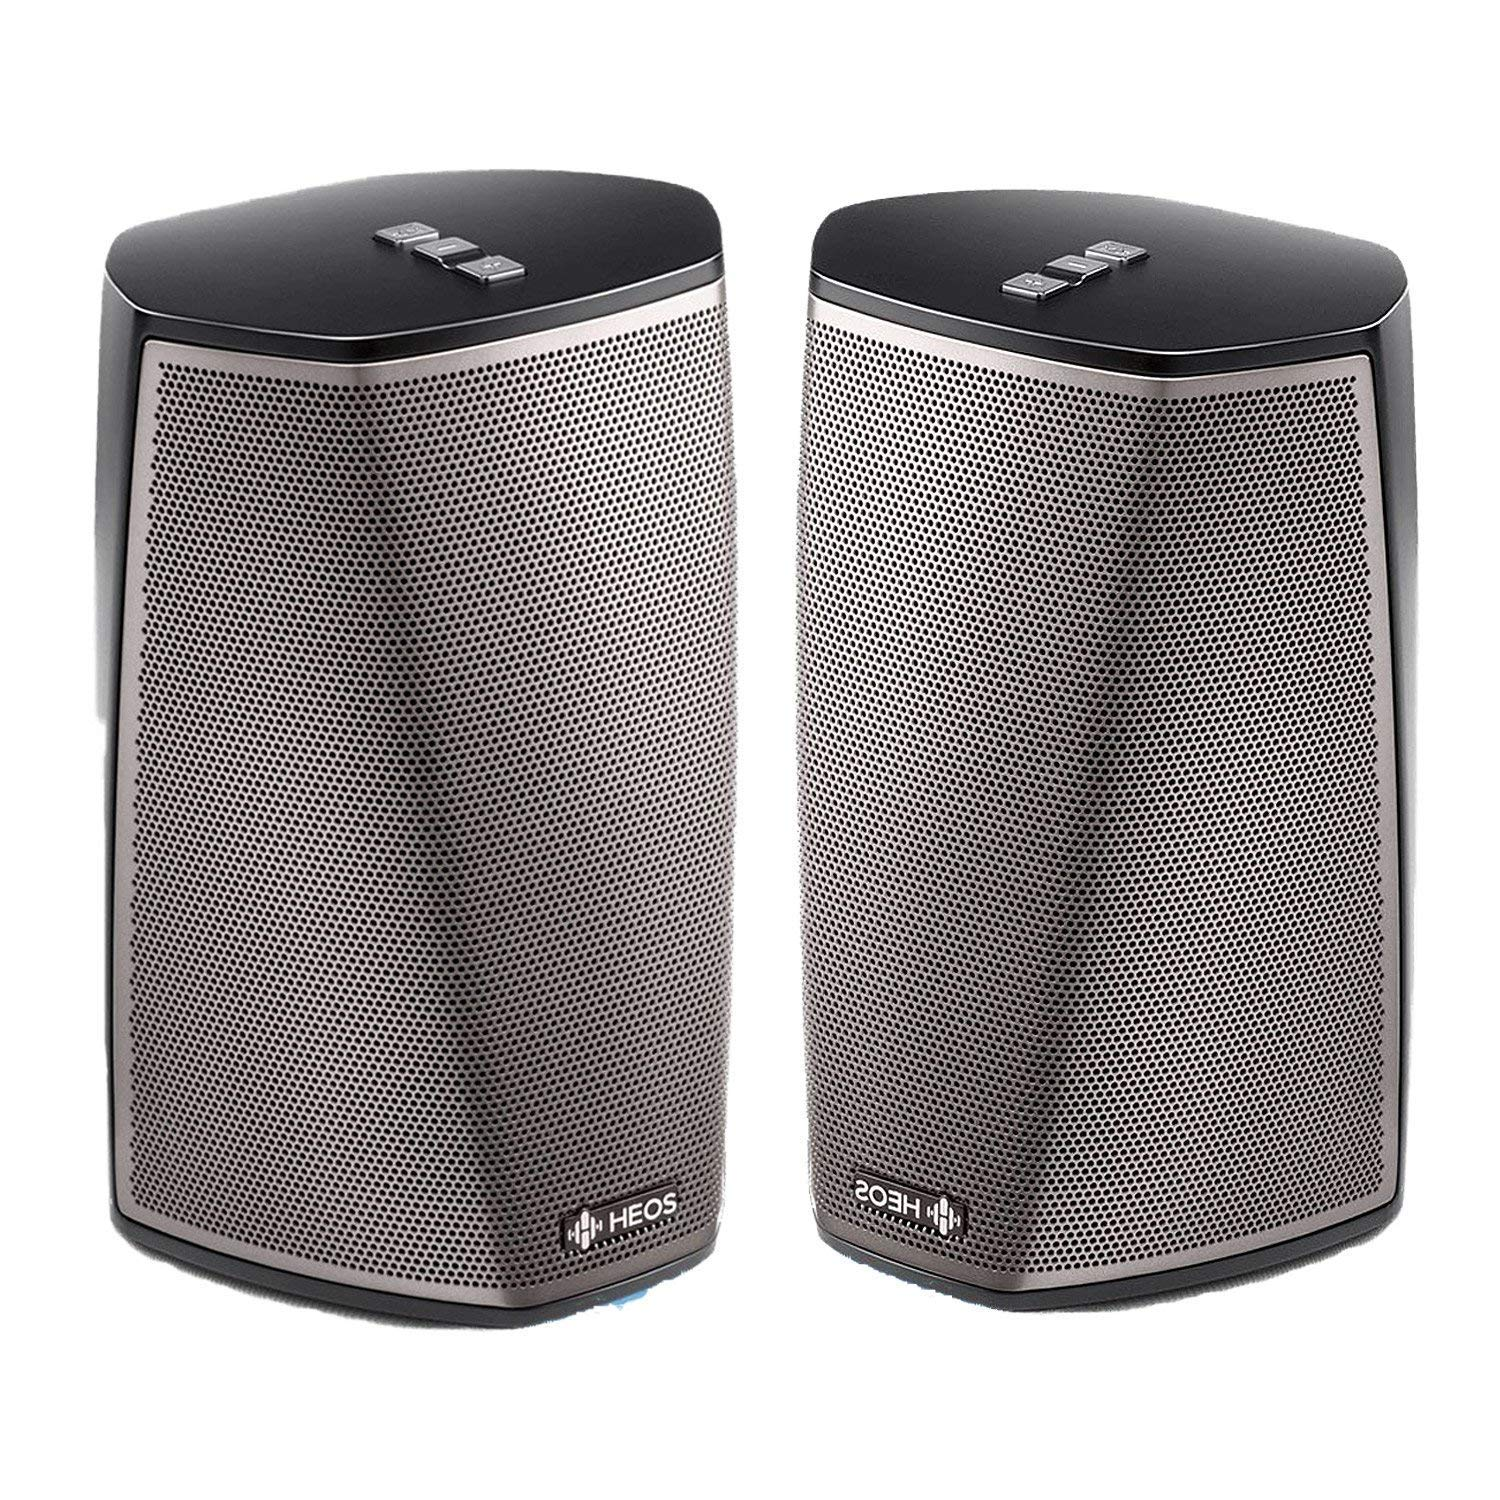 Denon HEOS 1 HS2 BK Compact Portable Wireless Speaker System (Pair) Bundle with WiFi & Bluetooth Wireless Connectivity, Class D Amplifiers & HEOS App in Black by Denon